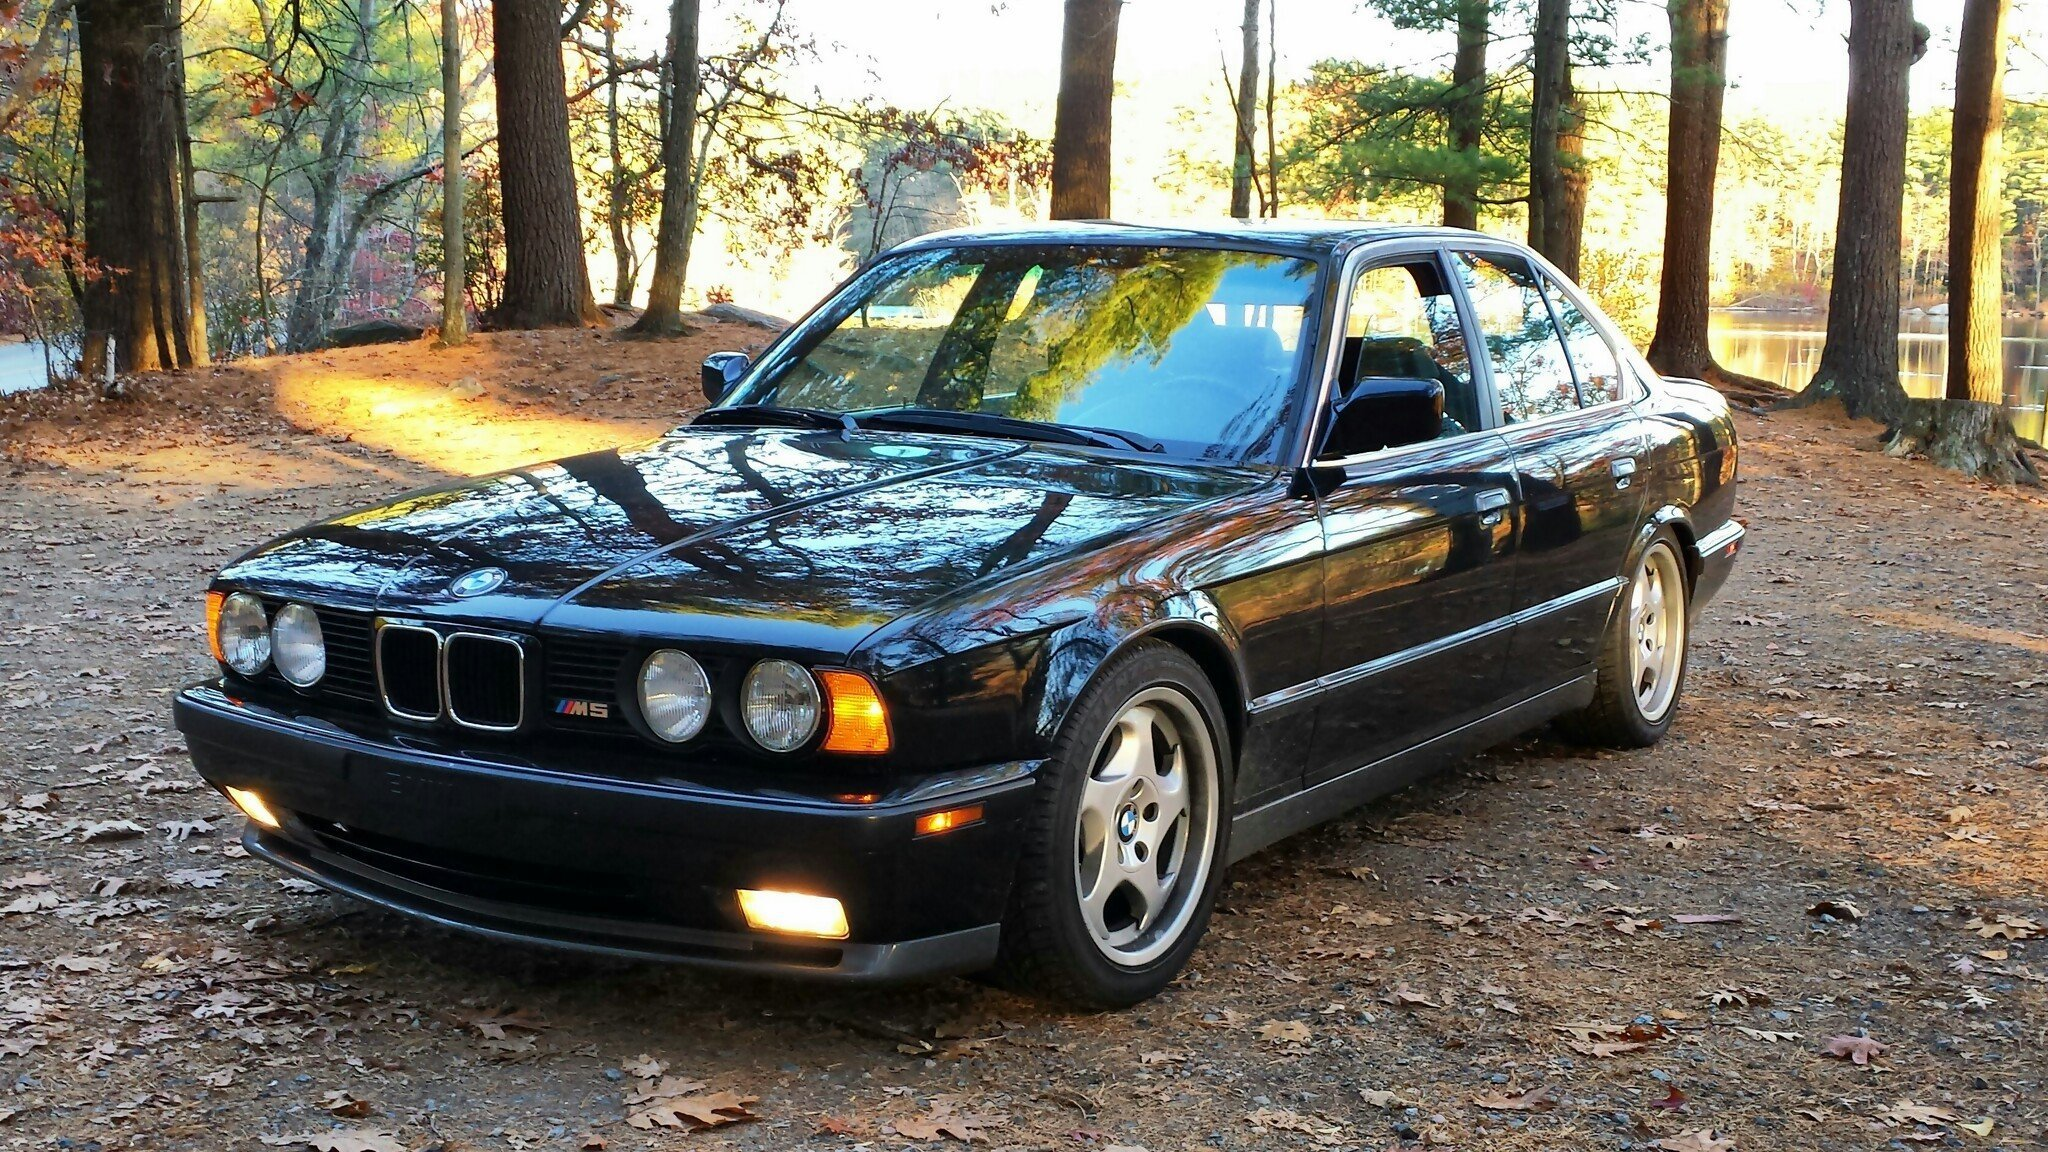 Must see Wallpaper High Quality Bmw - BMW-E34-High-Quality-Wallpapers  Gallery_634679.jpg